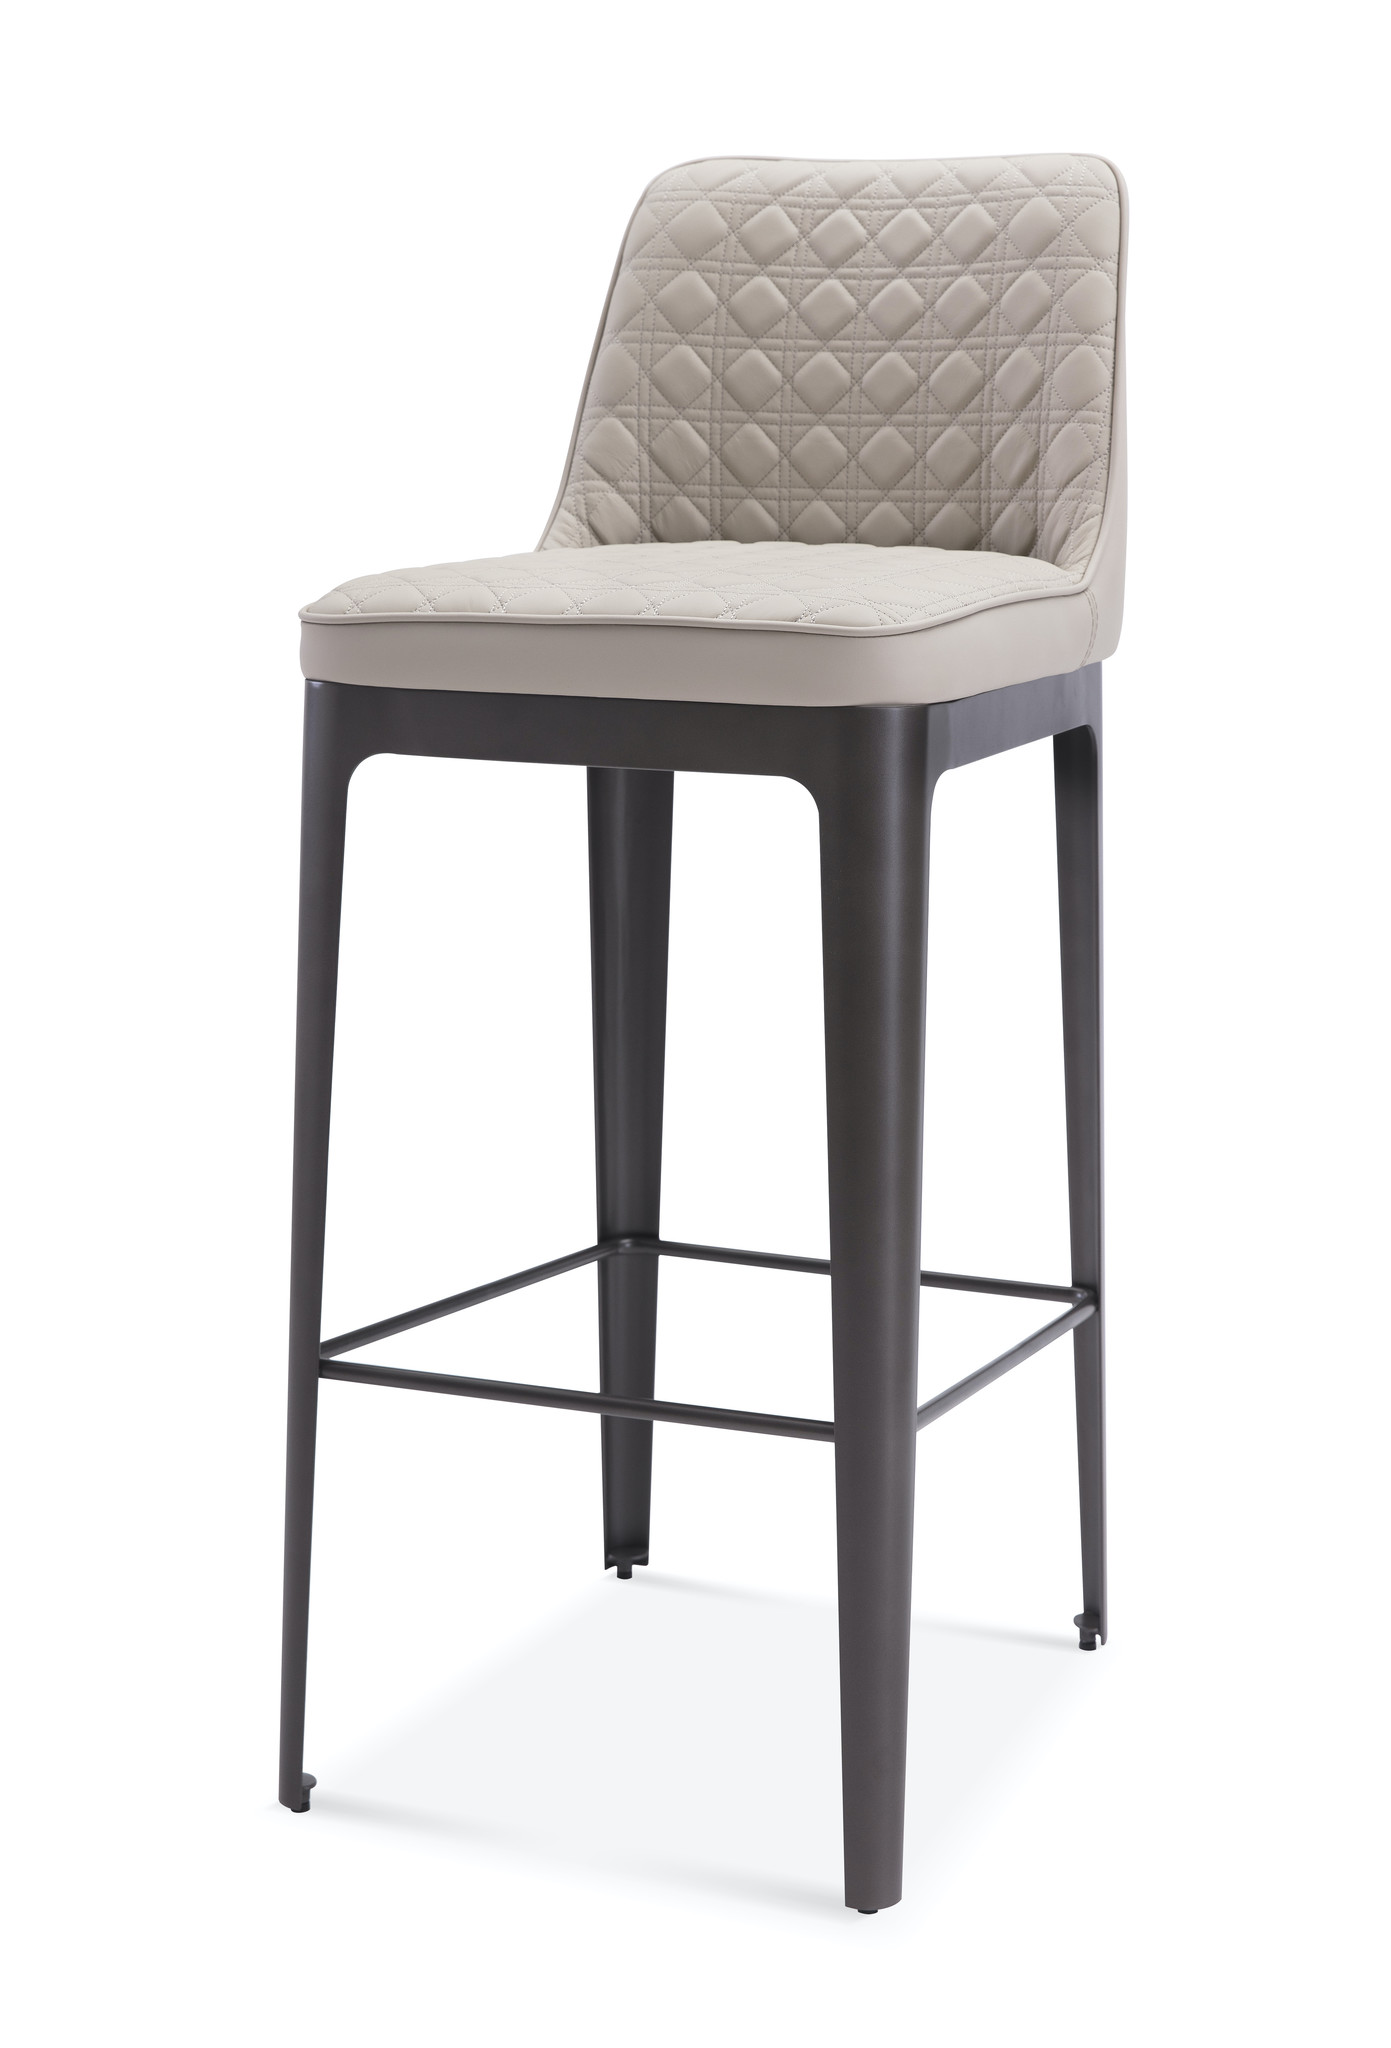 Diana Bar chair-1